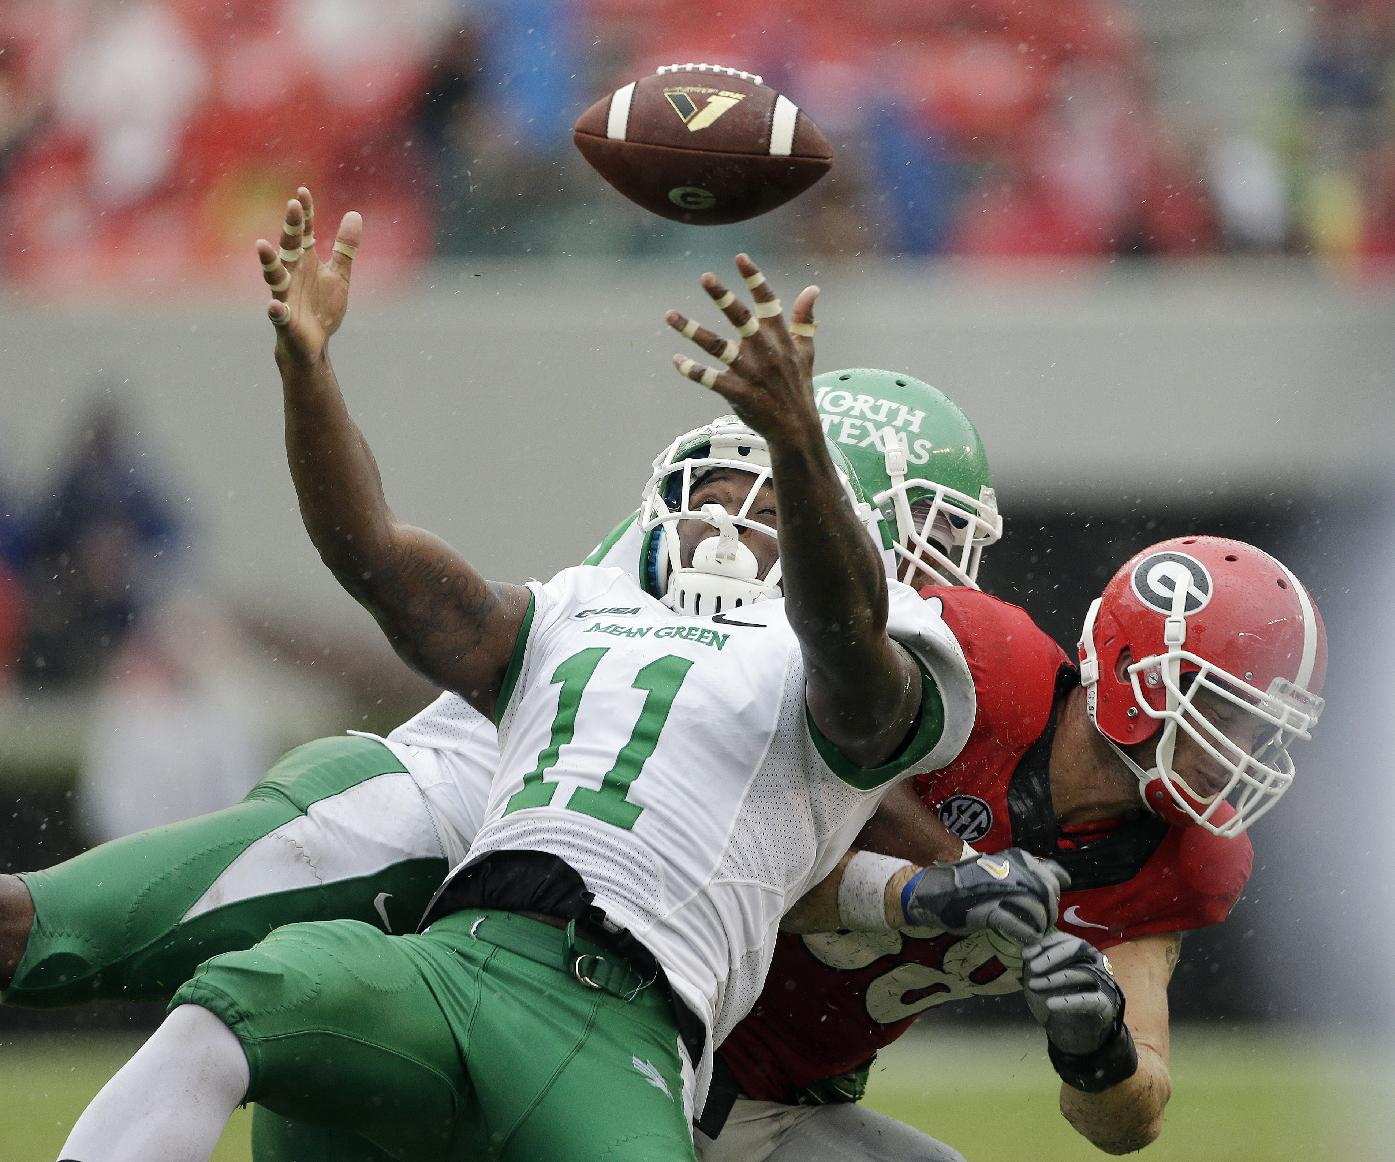 North Texas linebacker Will Wright (11) breaks up a pass intended for Georgia tight end Arthur Lynch (88) in the second half of an NCAA college football game Saturday, Sept. 21, 2013, in Athens, Ga. Georgia won 45-21